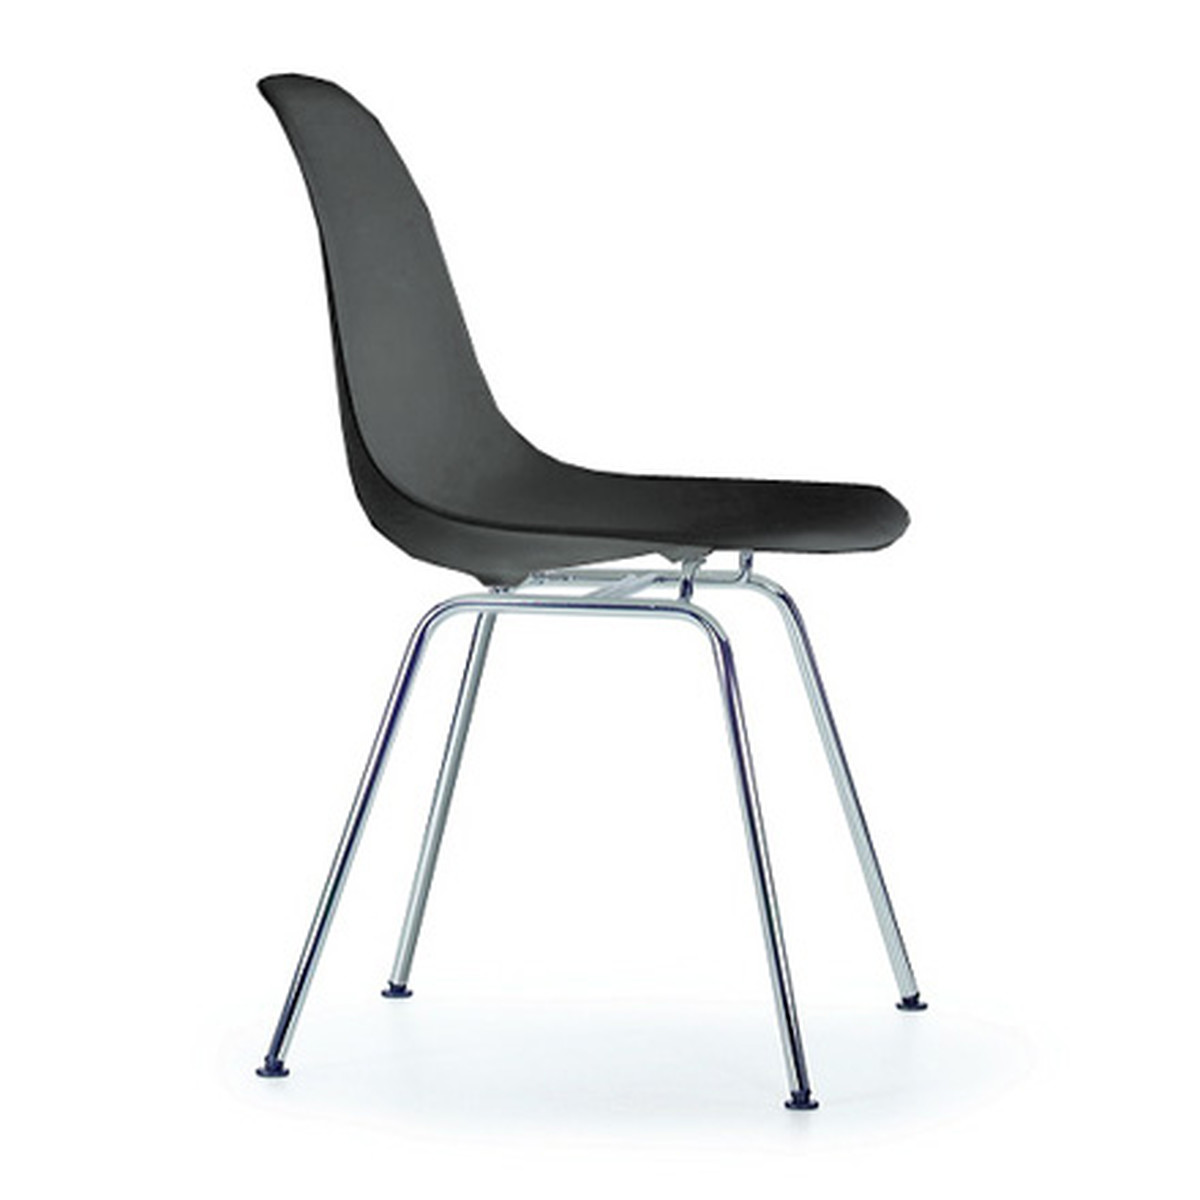 vitra eames plastic side chair dsx h 43 cm verchromt. Black Bedroom Furniture Sets. Home Design Ideas